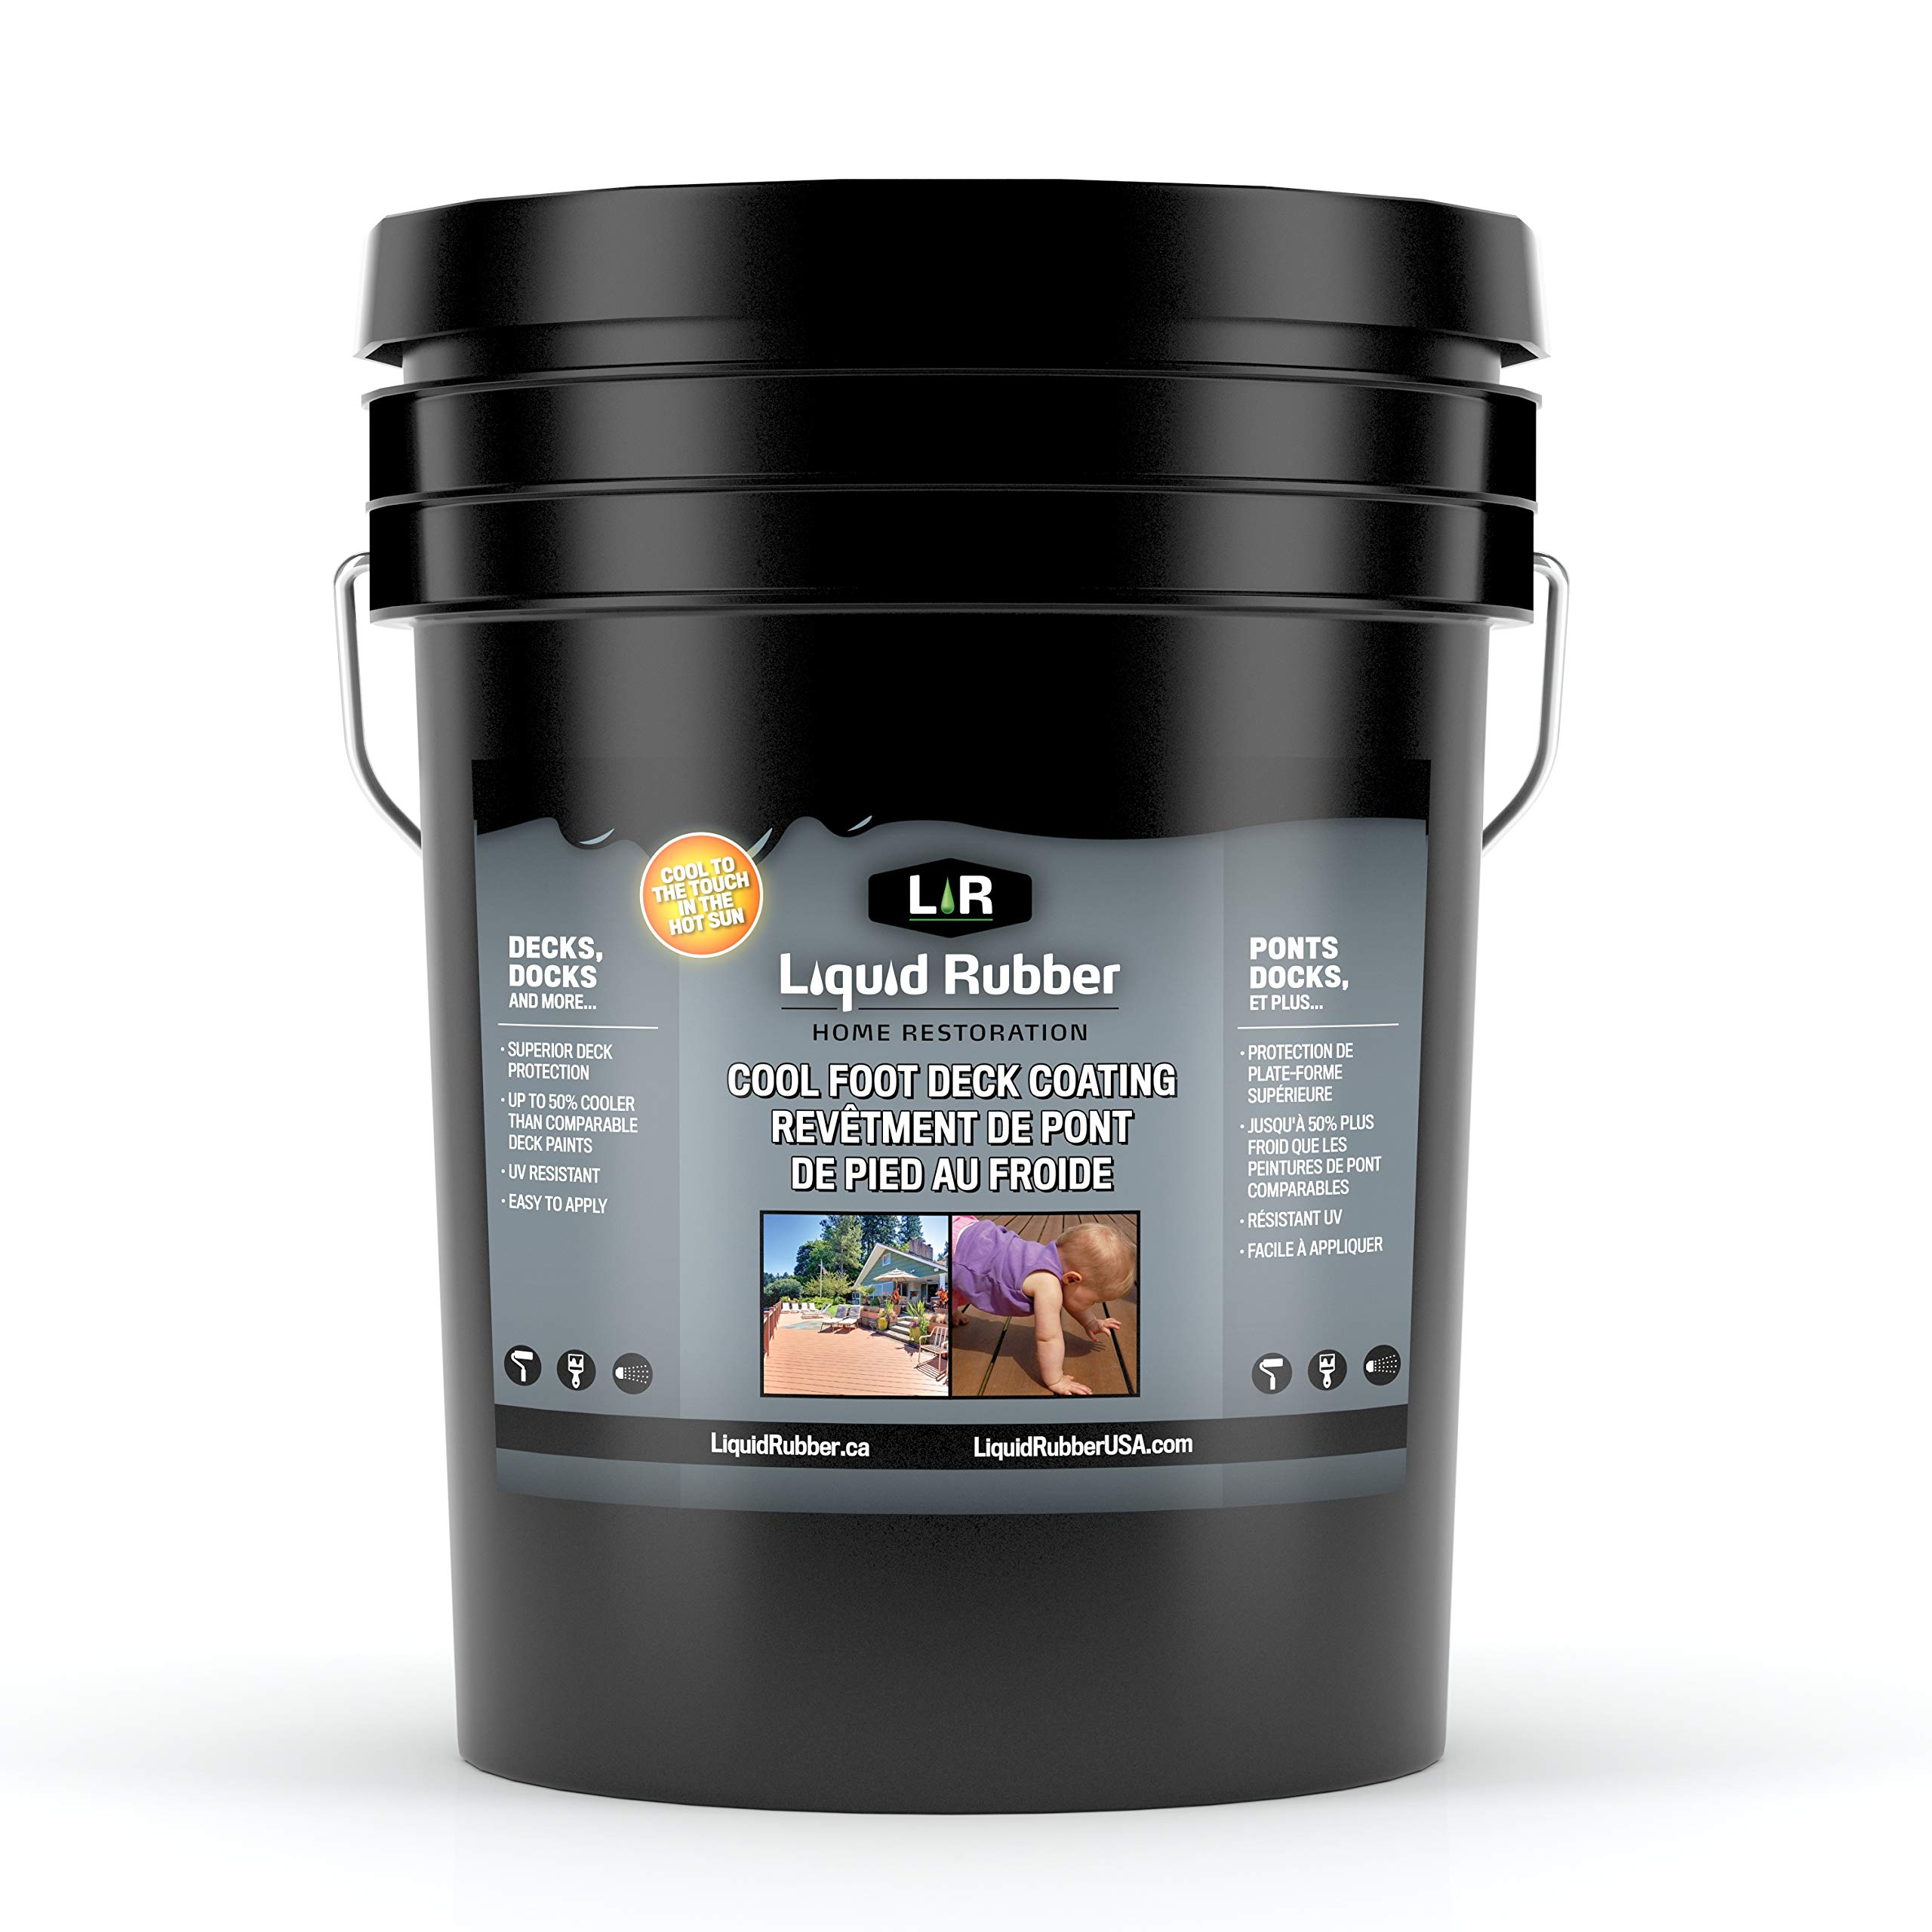 Liquid Rubber Cool Deck and Dock Coating/Sealant - Easy to Apply | UV Resistant | Non-Toxic | Neutral Beige | 5 Gallon